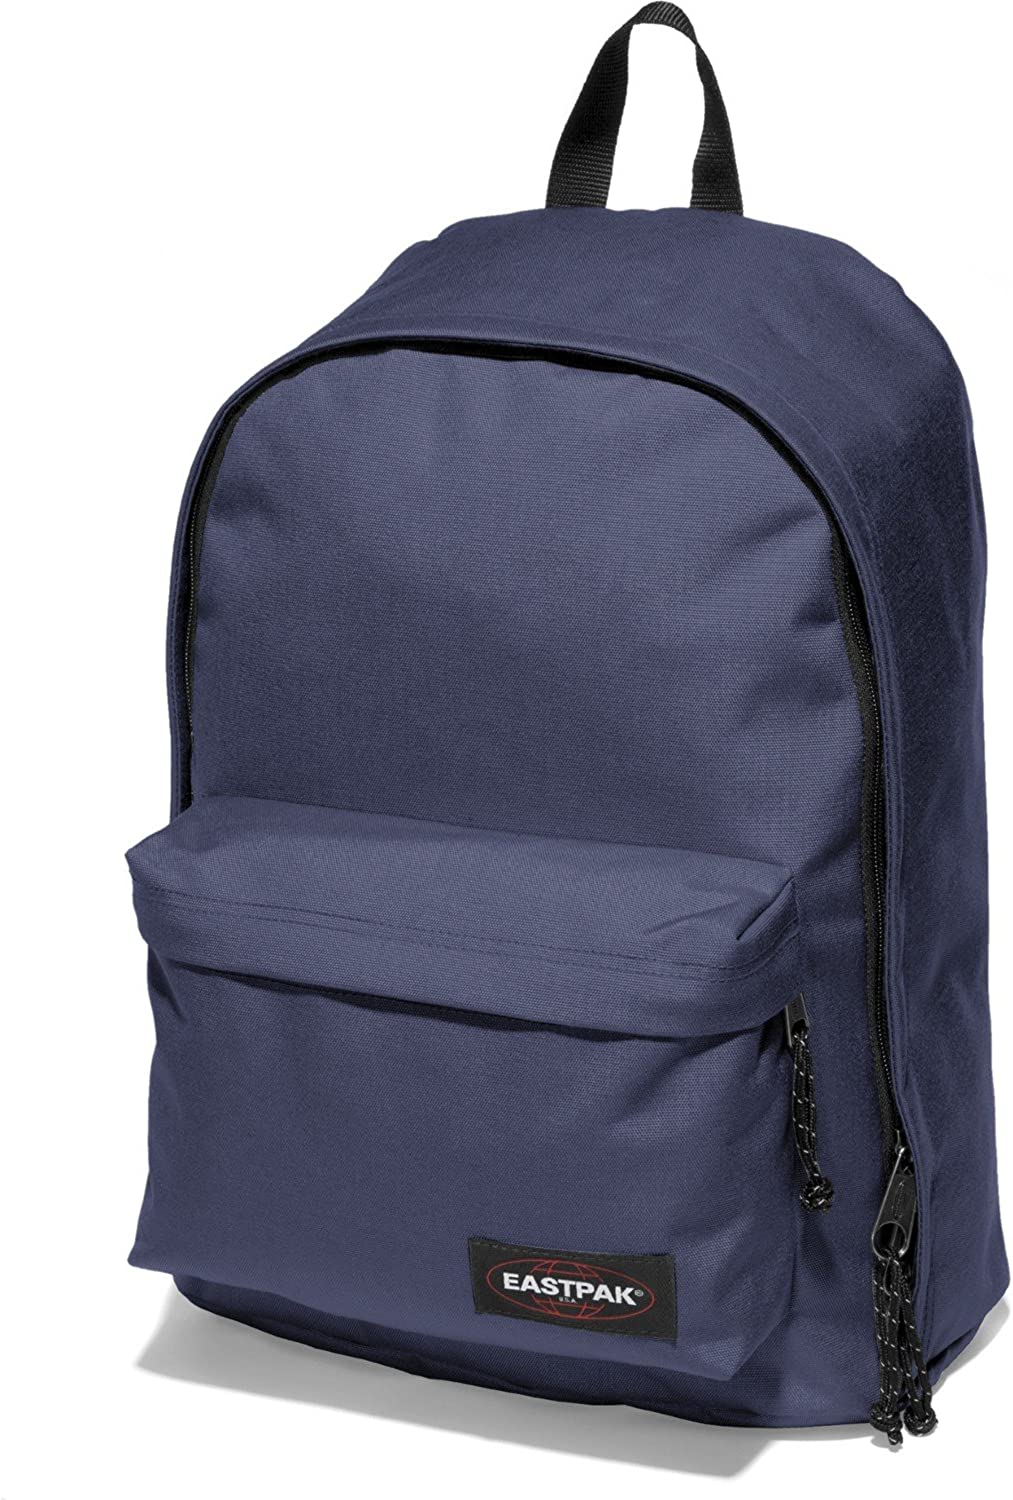 Mochila Eastpak Out of Office Morada: Amazon.es: Equipaje